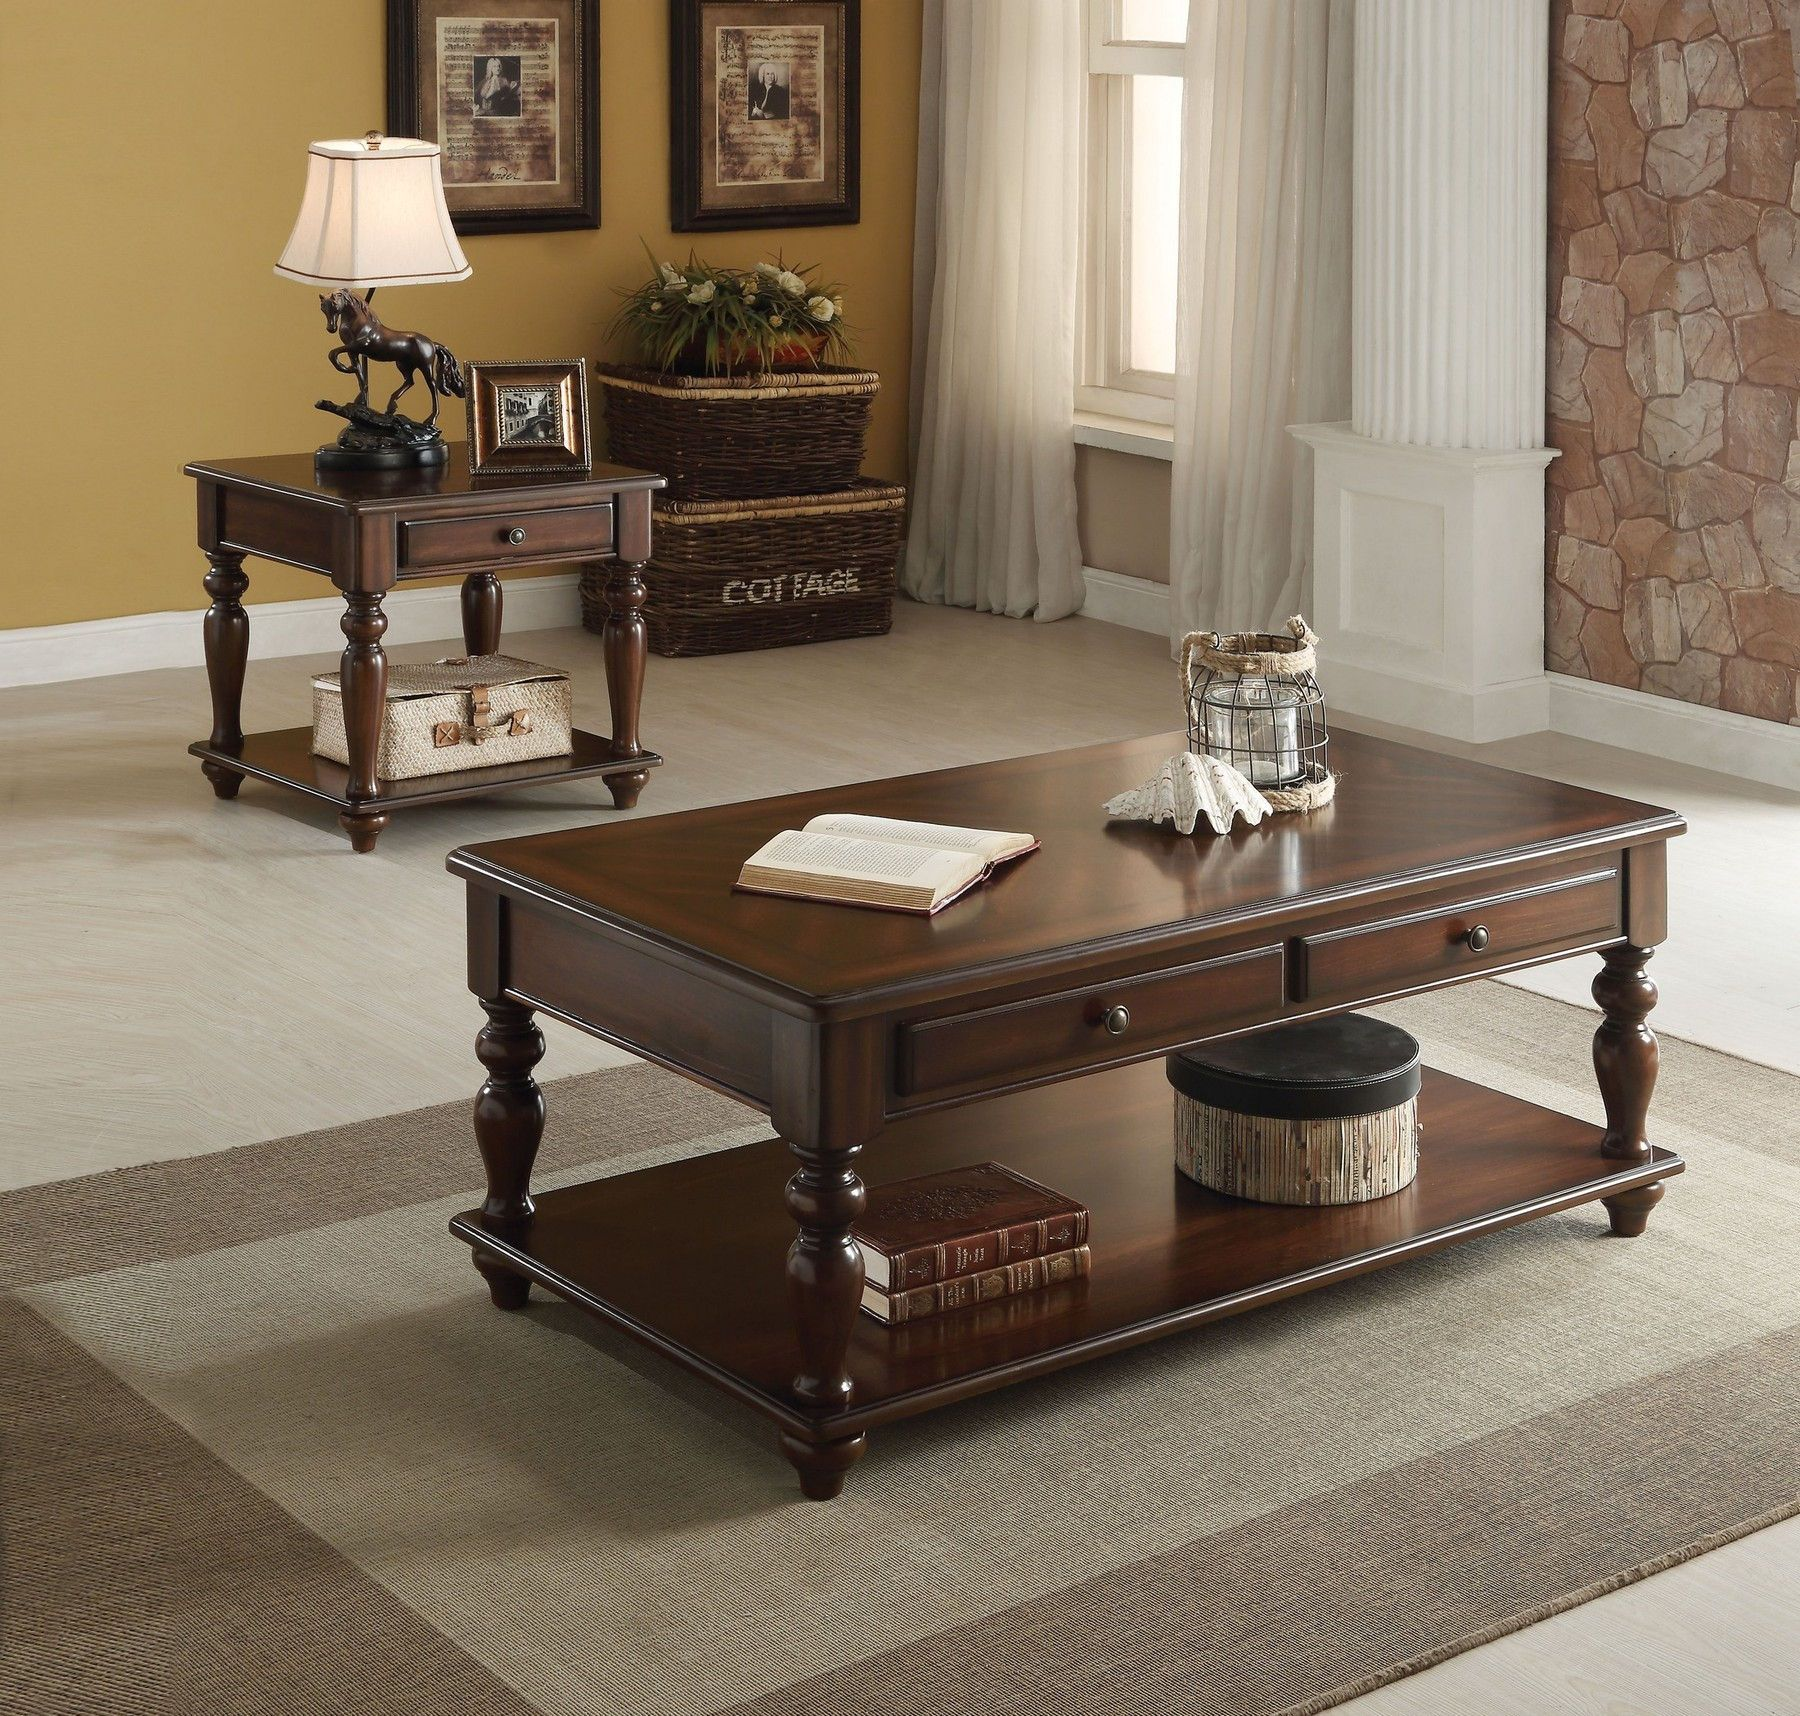 Farrel Coffee Table 82745 Acme Corporation Coffee Tables Coffee Table Traditional Coffee Table Living Room Table Sets [ 1716 x 1800 Pixel ]